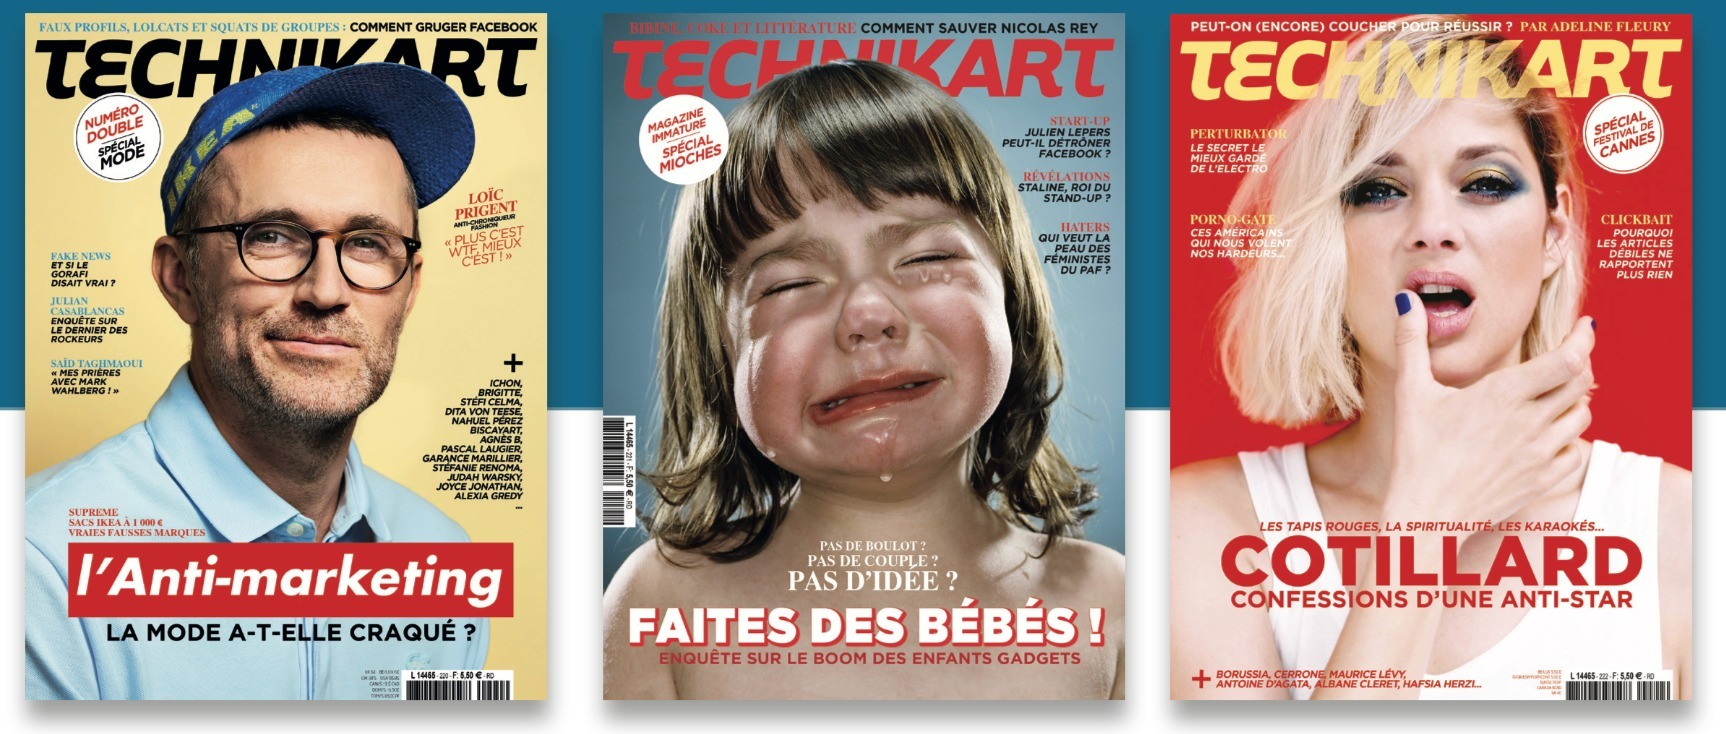 Technikart Magazine (@technikart) Cover Image